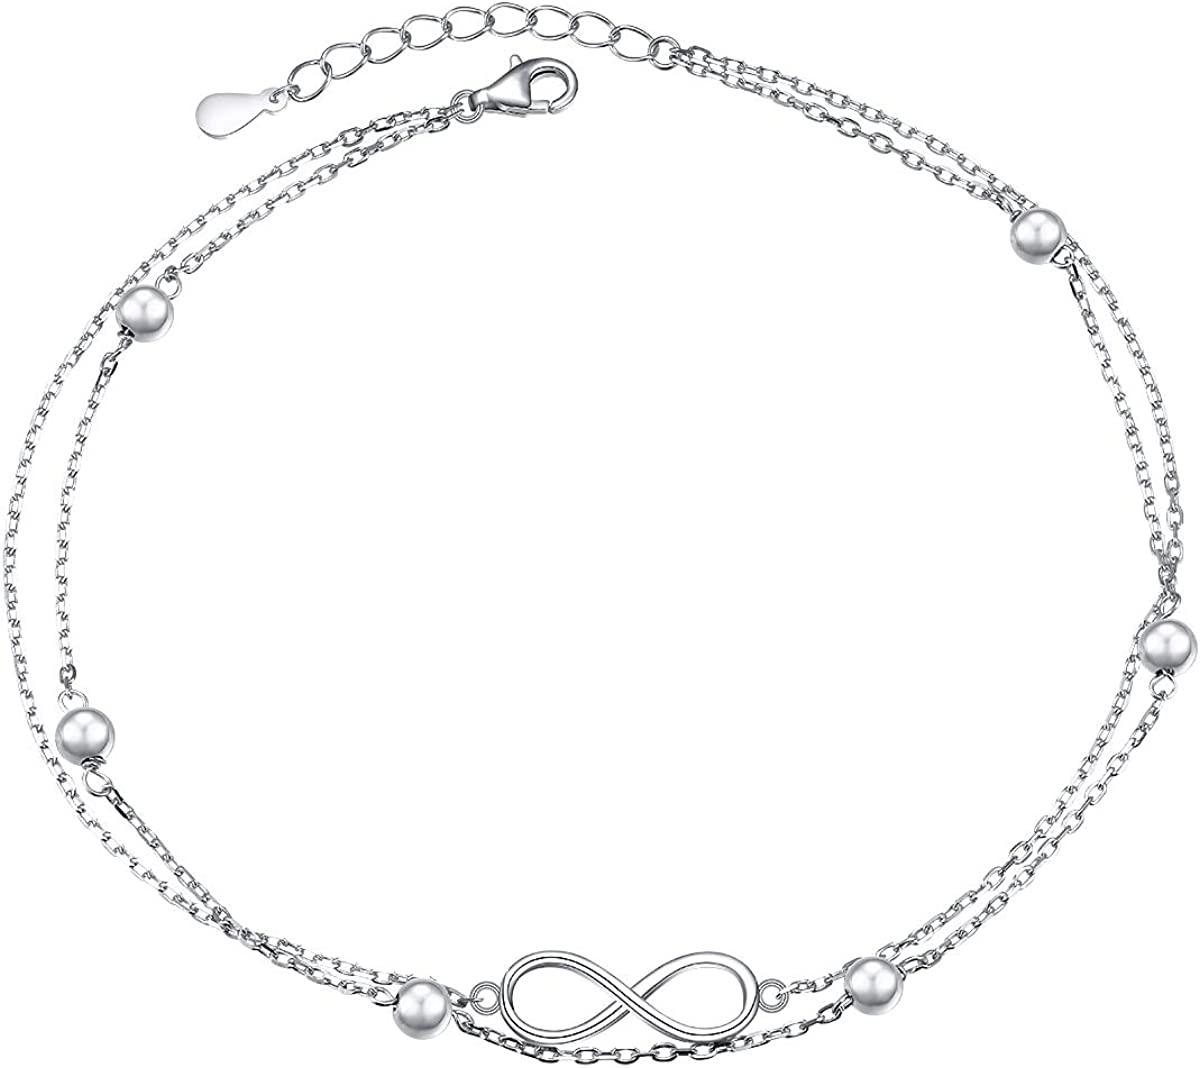 Flyow Anklet for Women S925 Sterling Silver Adjustable Foot Beaded Heart Charm Ankle Bracelet Anklets Jewelry